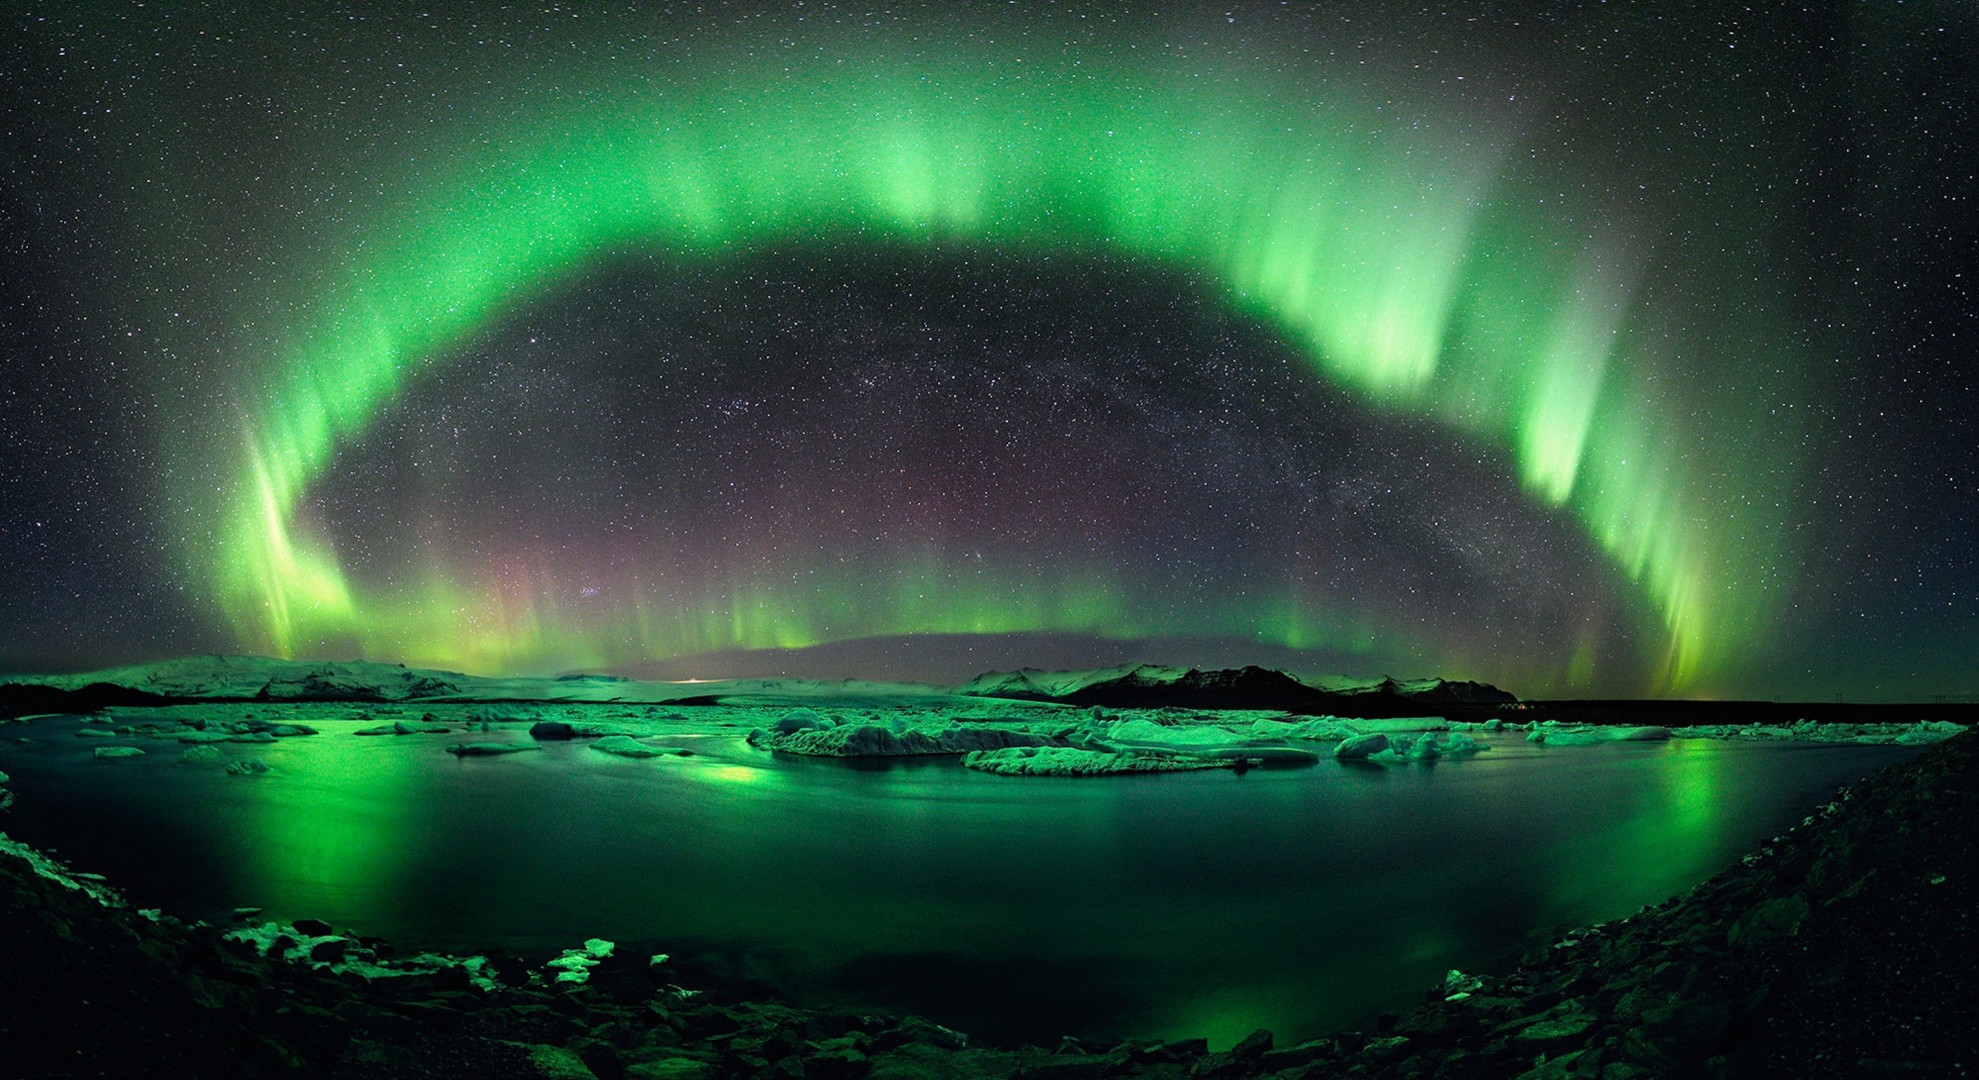 the scientific explanation behind the fascinating phenomenon of the northern lights 10 bizarre physics phenomena mike williams june 24, 2013 share 420 stumble 9 tweet pin 7 +1 35 share 13 shares 484 we often take our daily experience of life.